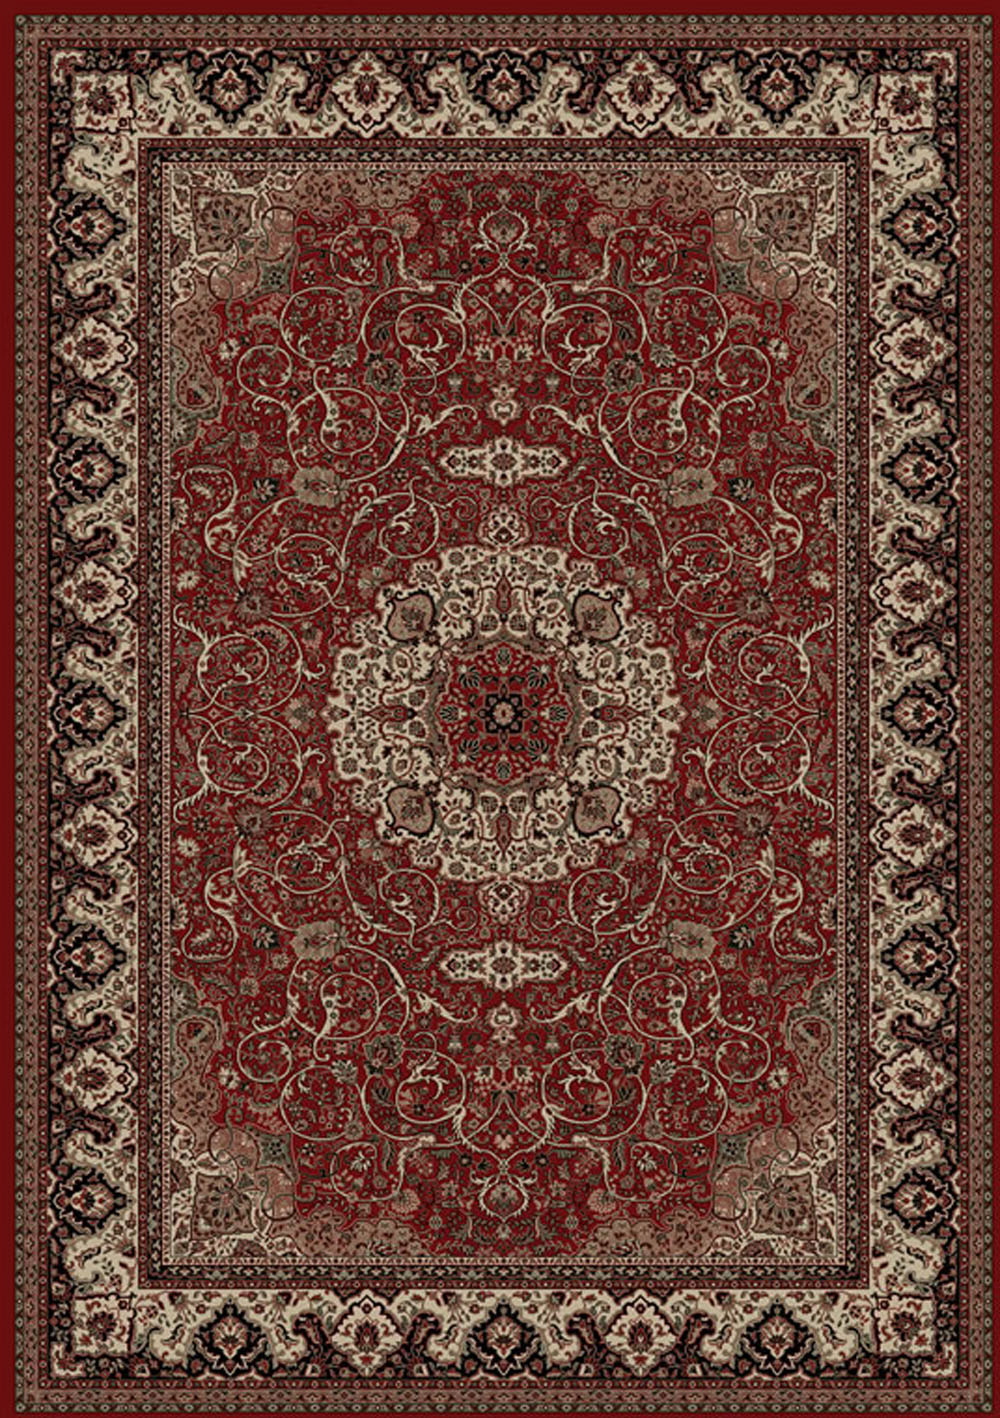 Concord Global Persian Classics ISFAHAN RED Rug